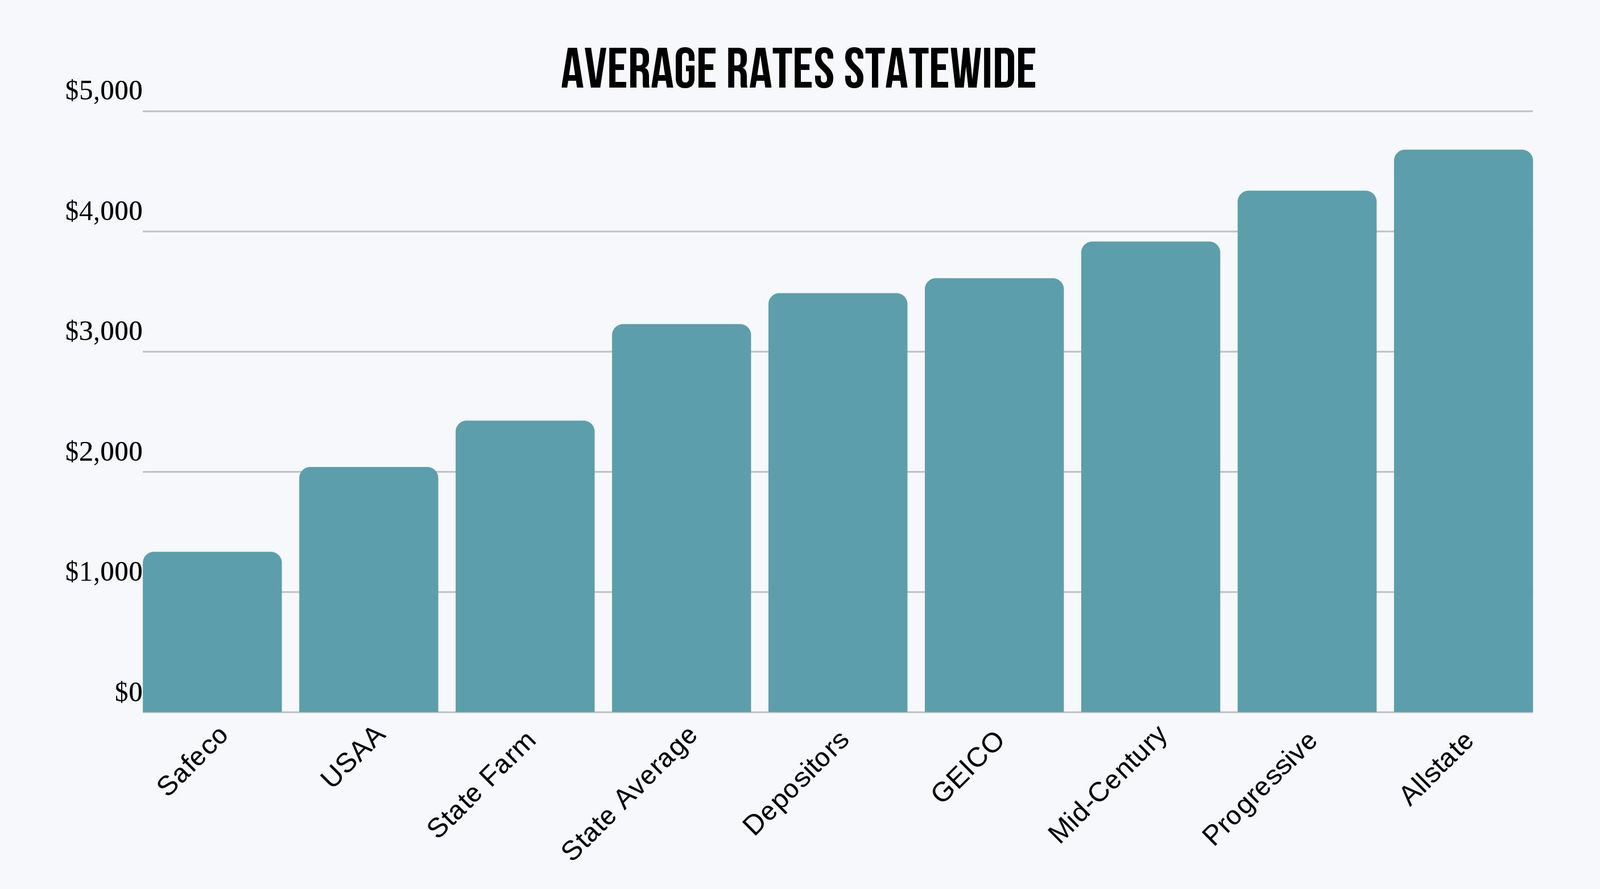 Average Rates for Montana Insurers